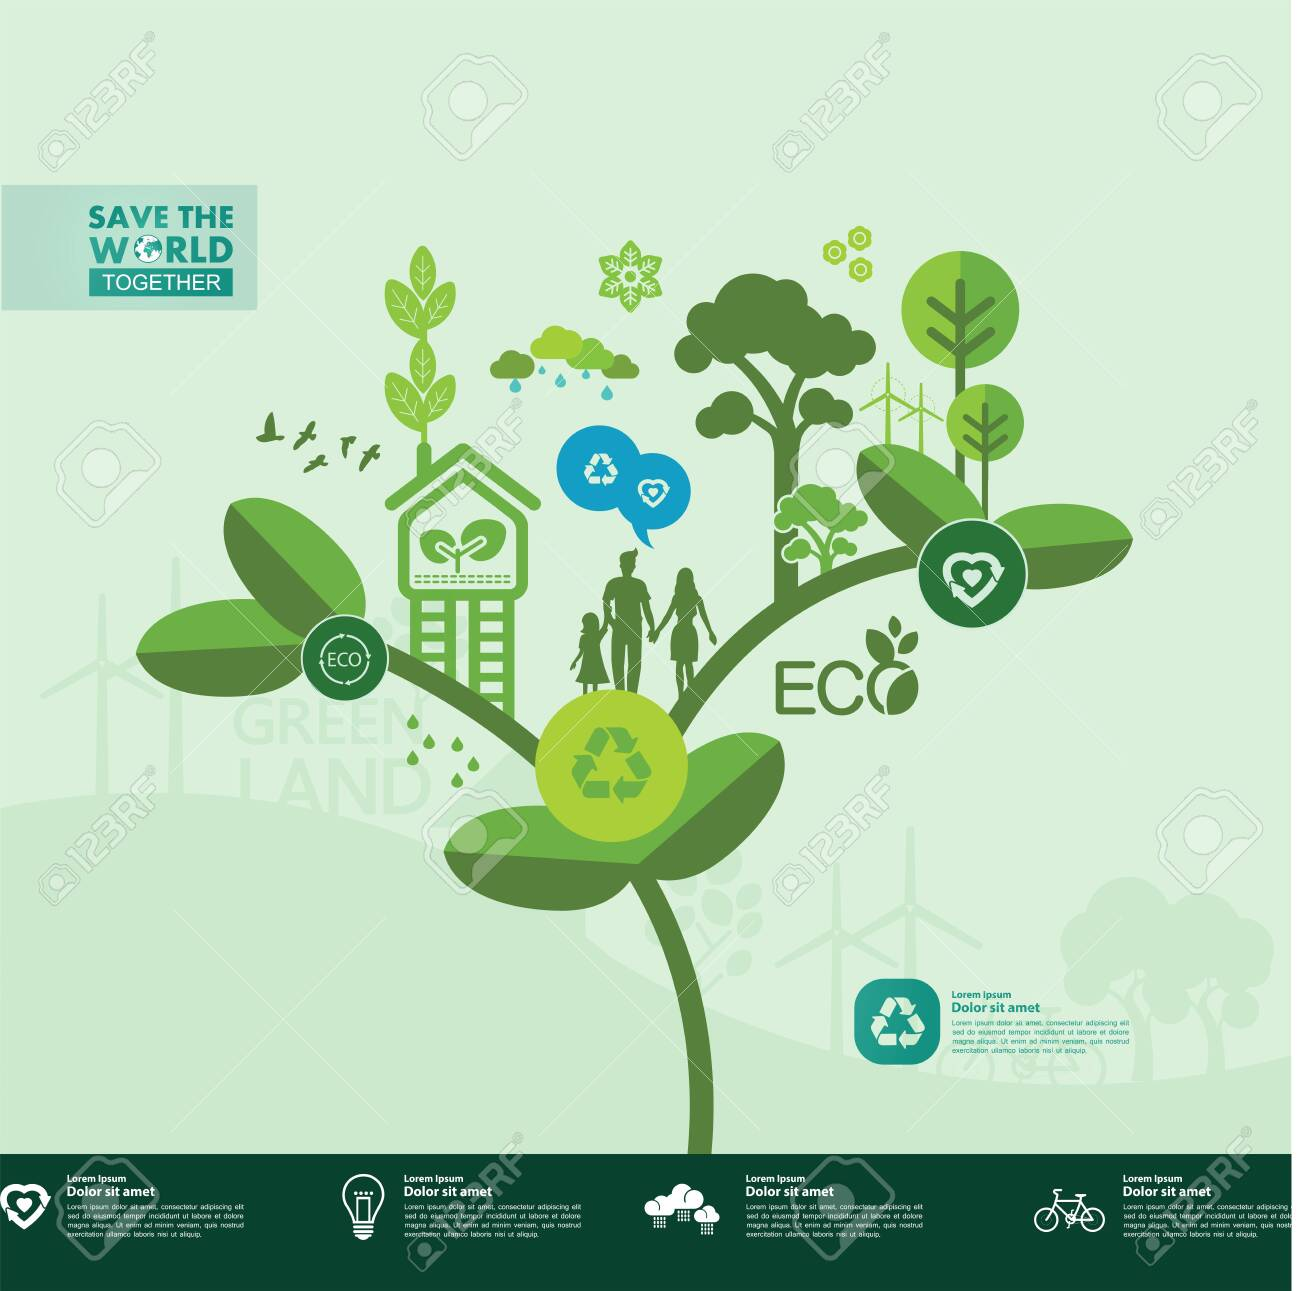 Save the world together green ecology vector illustration. - 138986967